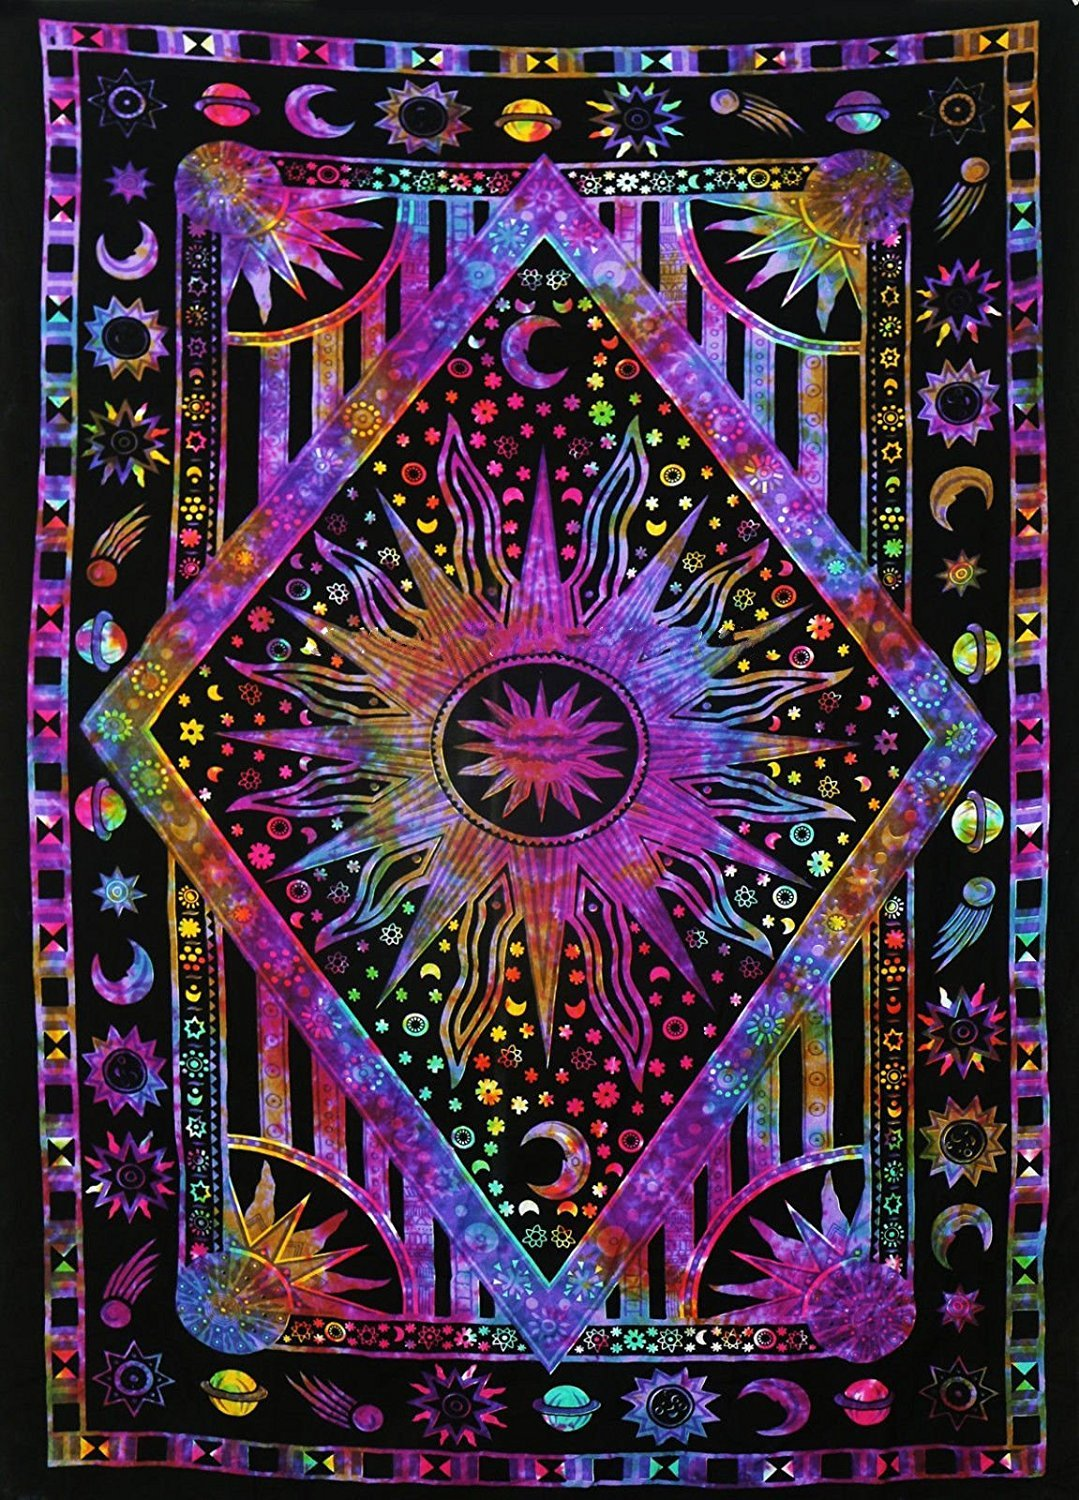 Popular Handicrafts Kp786 Psychedelic Celestial Sun Moon Planet Bohemian Tapestry Wall Hanging Dorm Decor Boho Tapestries Hippie Hippy Purple tie dye Tapestry Beach Coverlet(54''x84'')